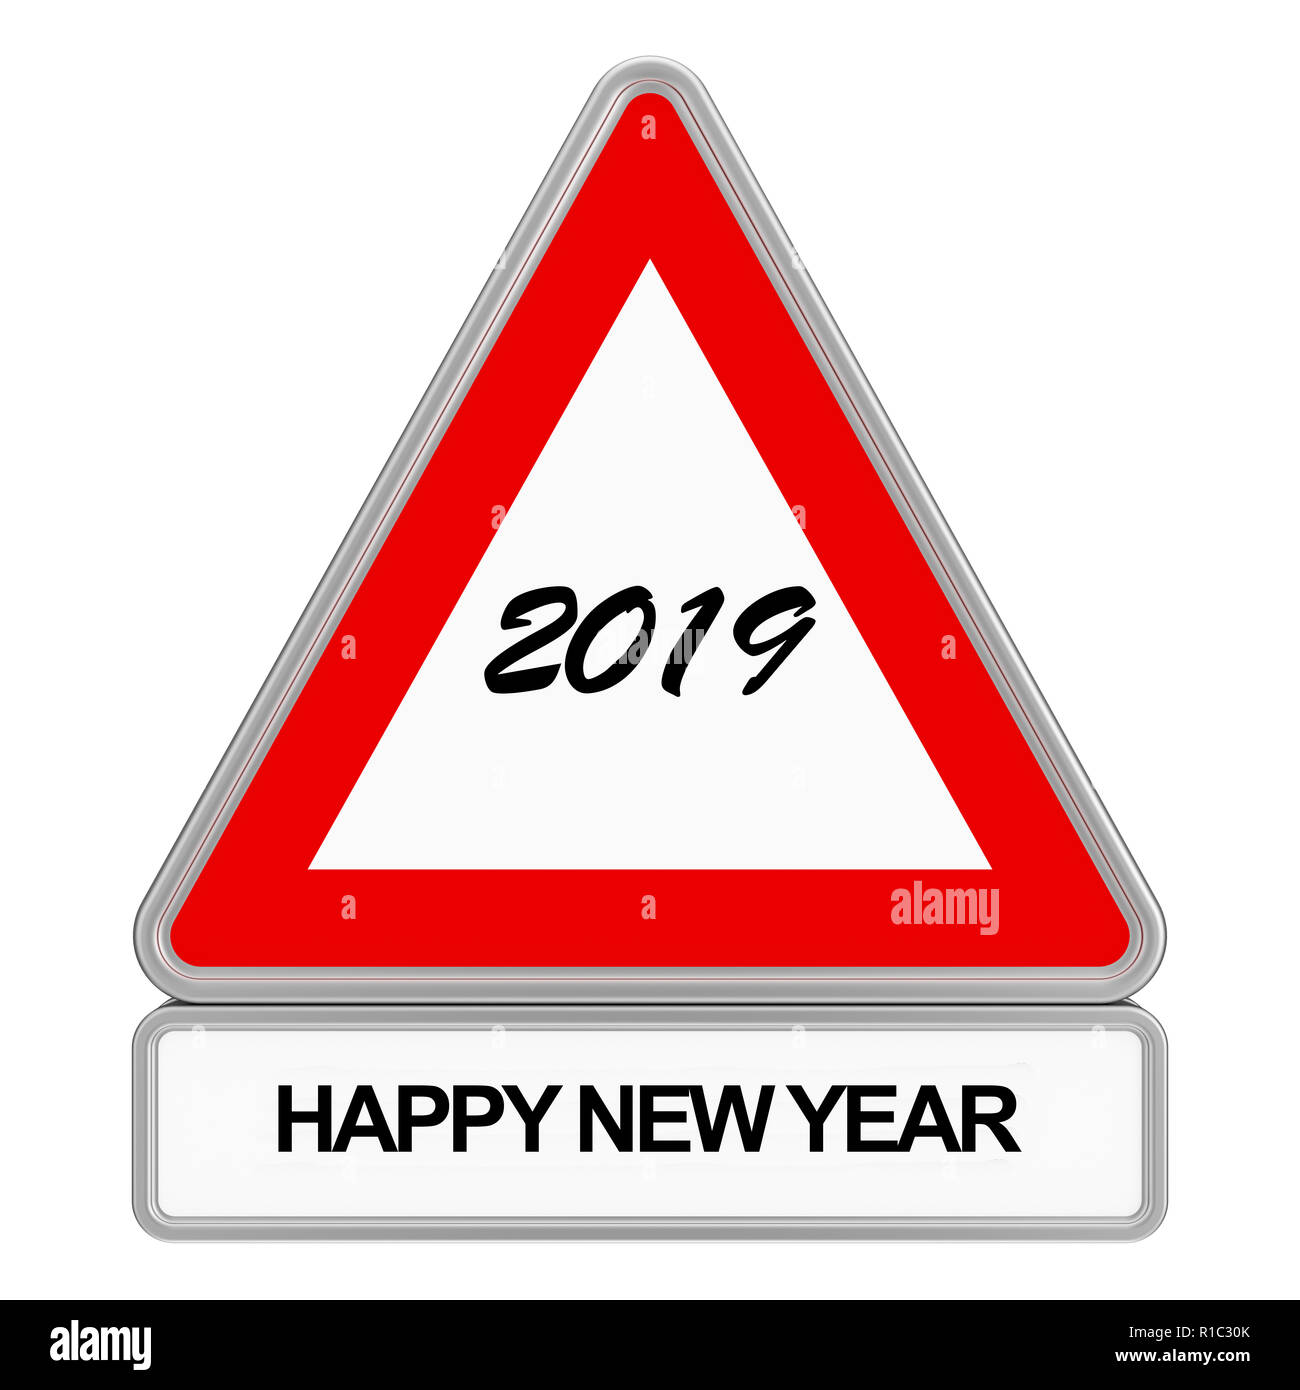 2019 Road sign - Stock Image